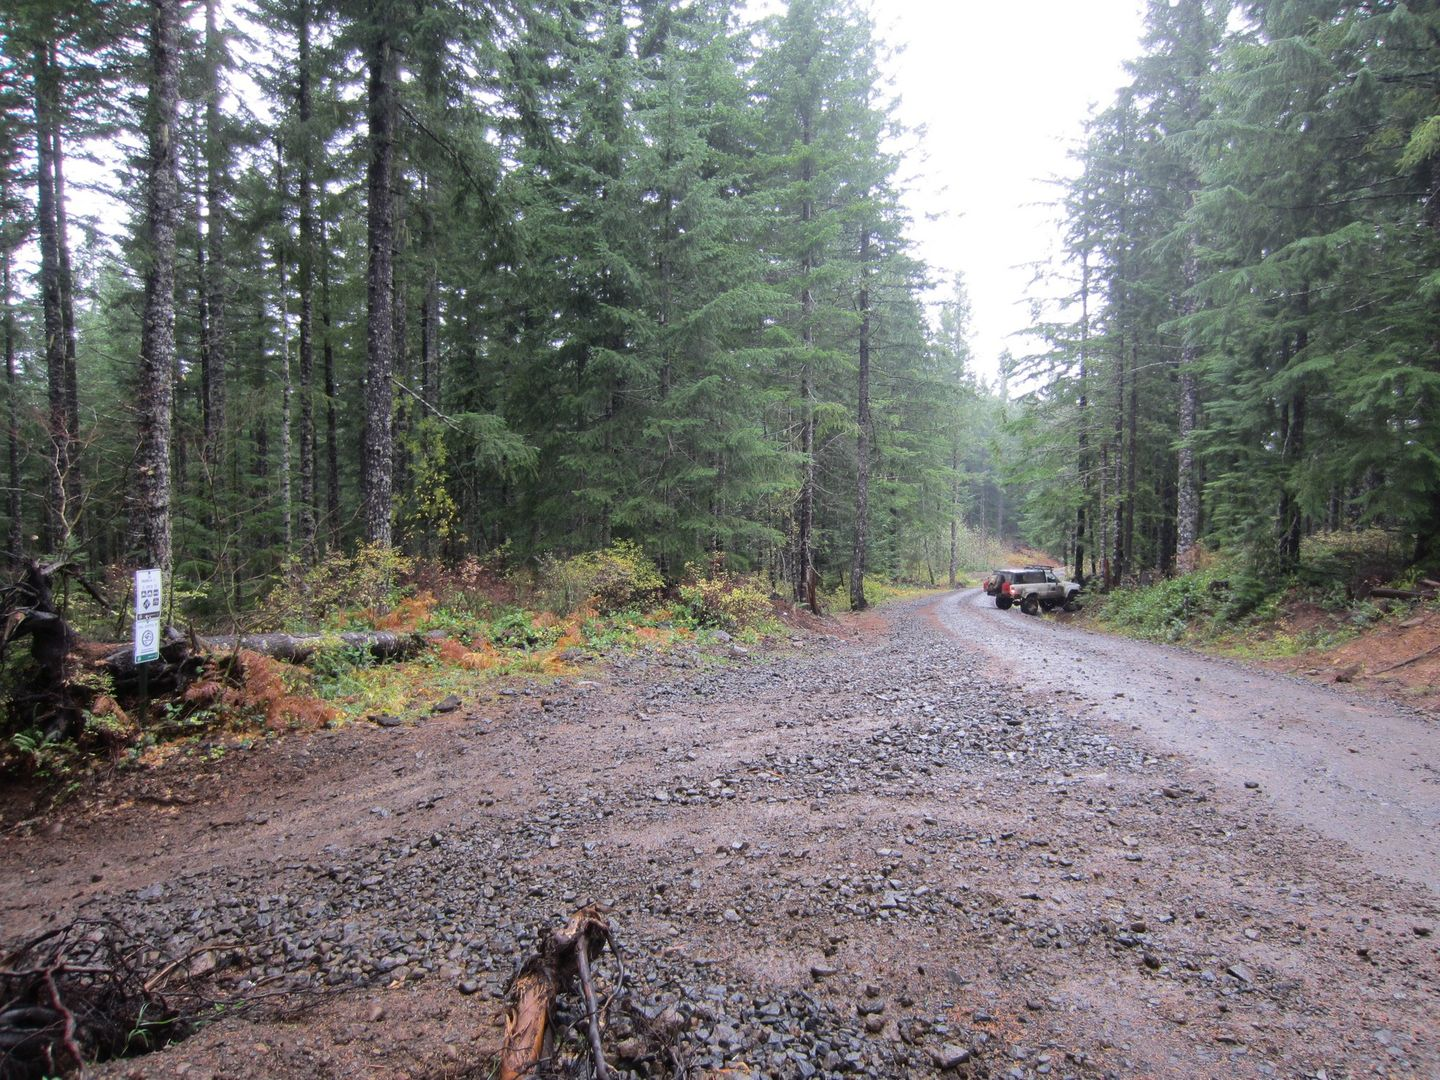 Firebreak Five / Tillamook State Forest - Waypoint 7: Go Left and Then Right Across Gravel Road